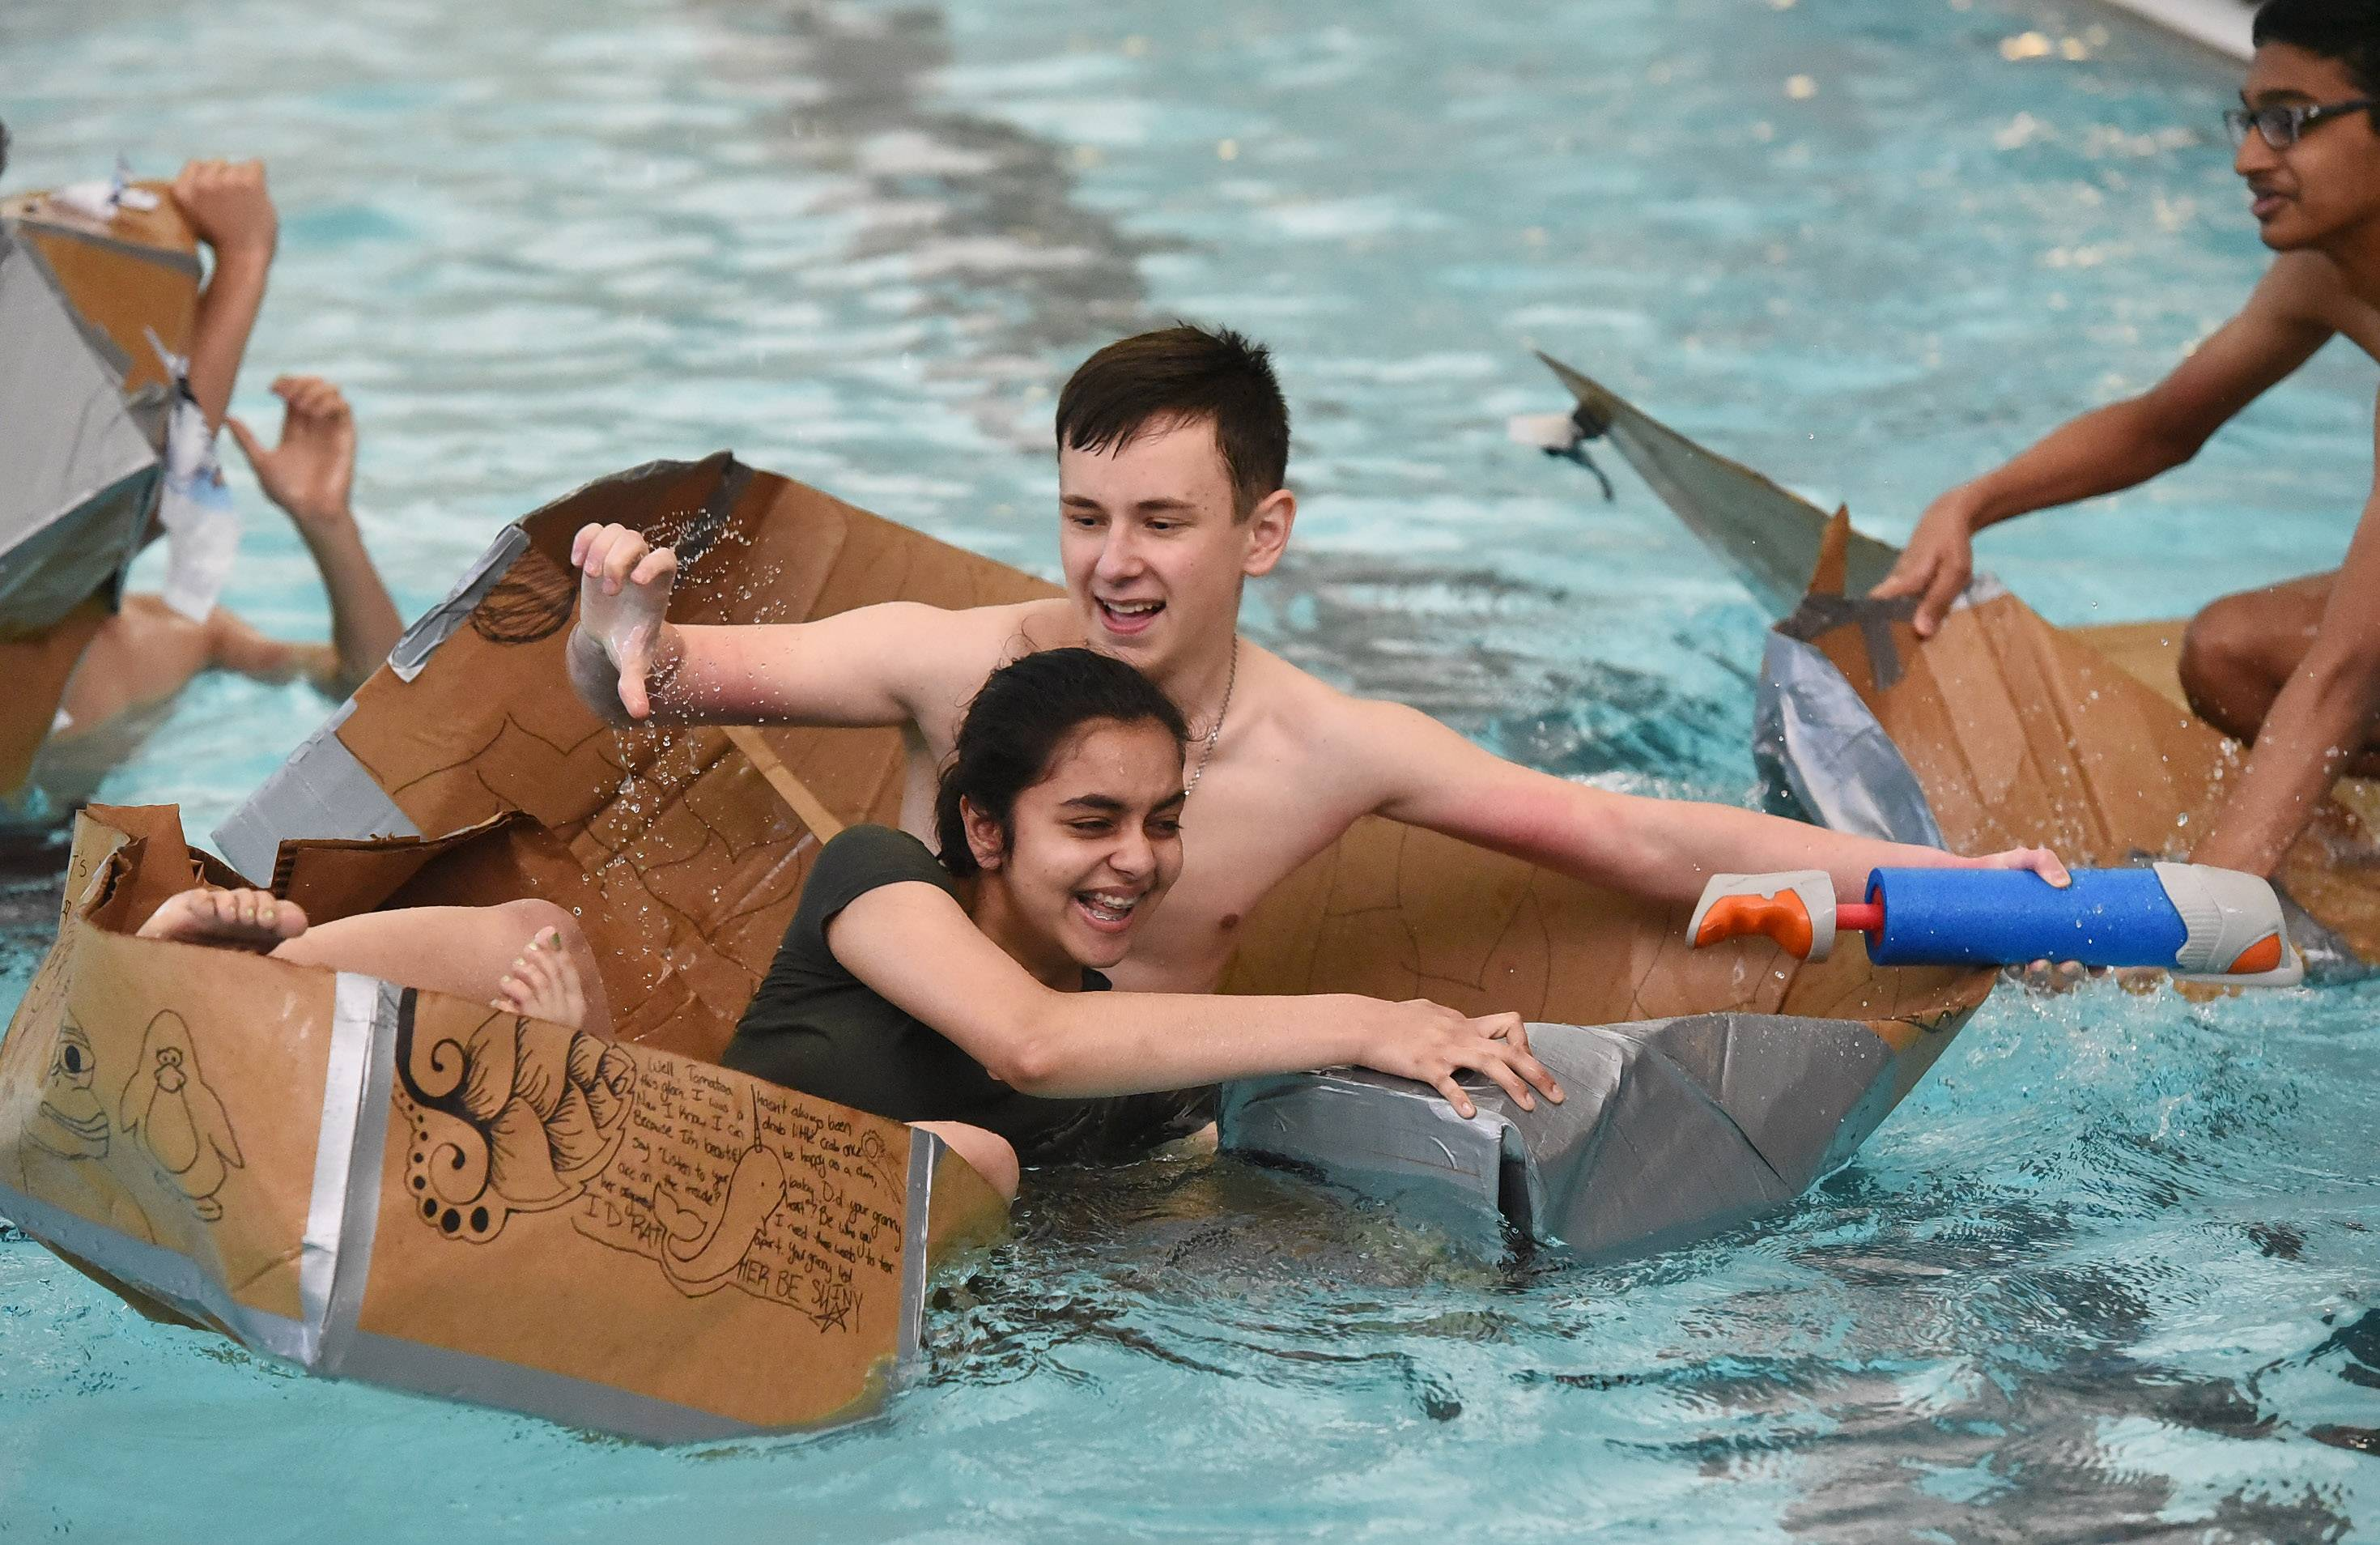 Ananya Shah and Andriy Bilobokyy struggle to stay afloat Monday during a cardboard boat regatta at Stevenson High School in Lincolnshire.